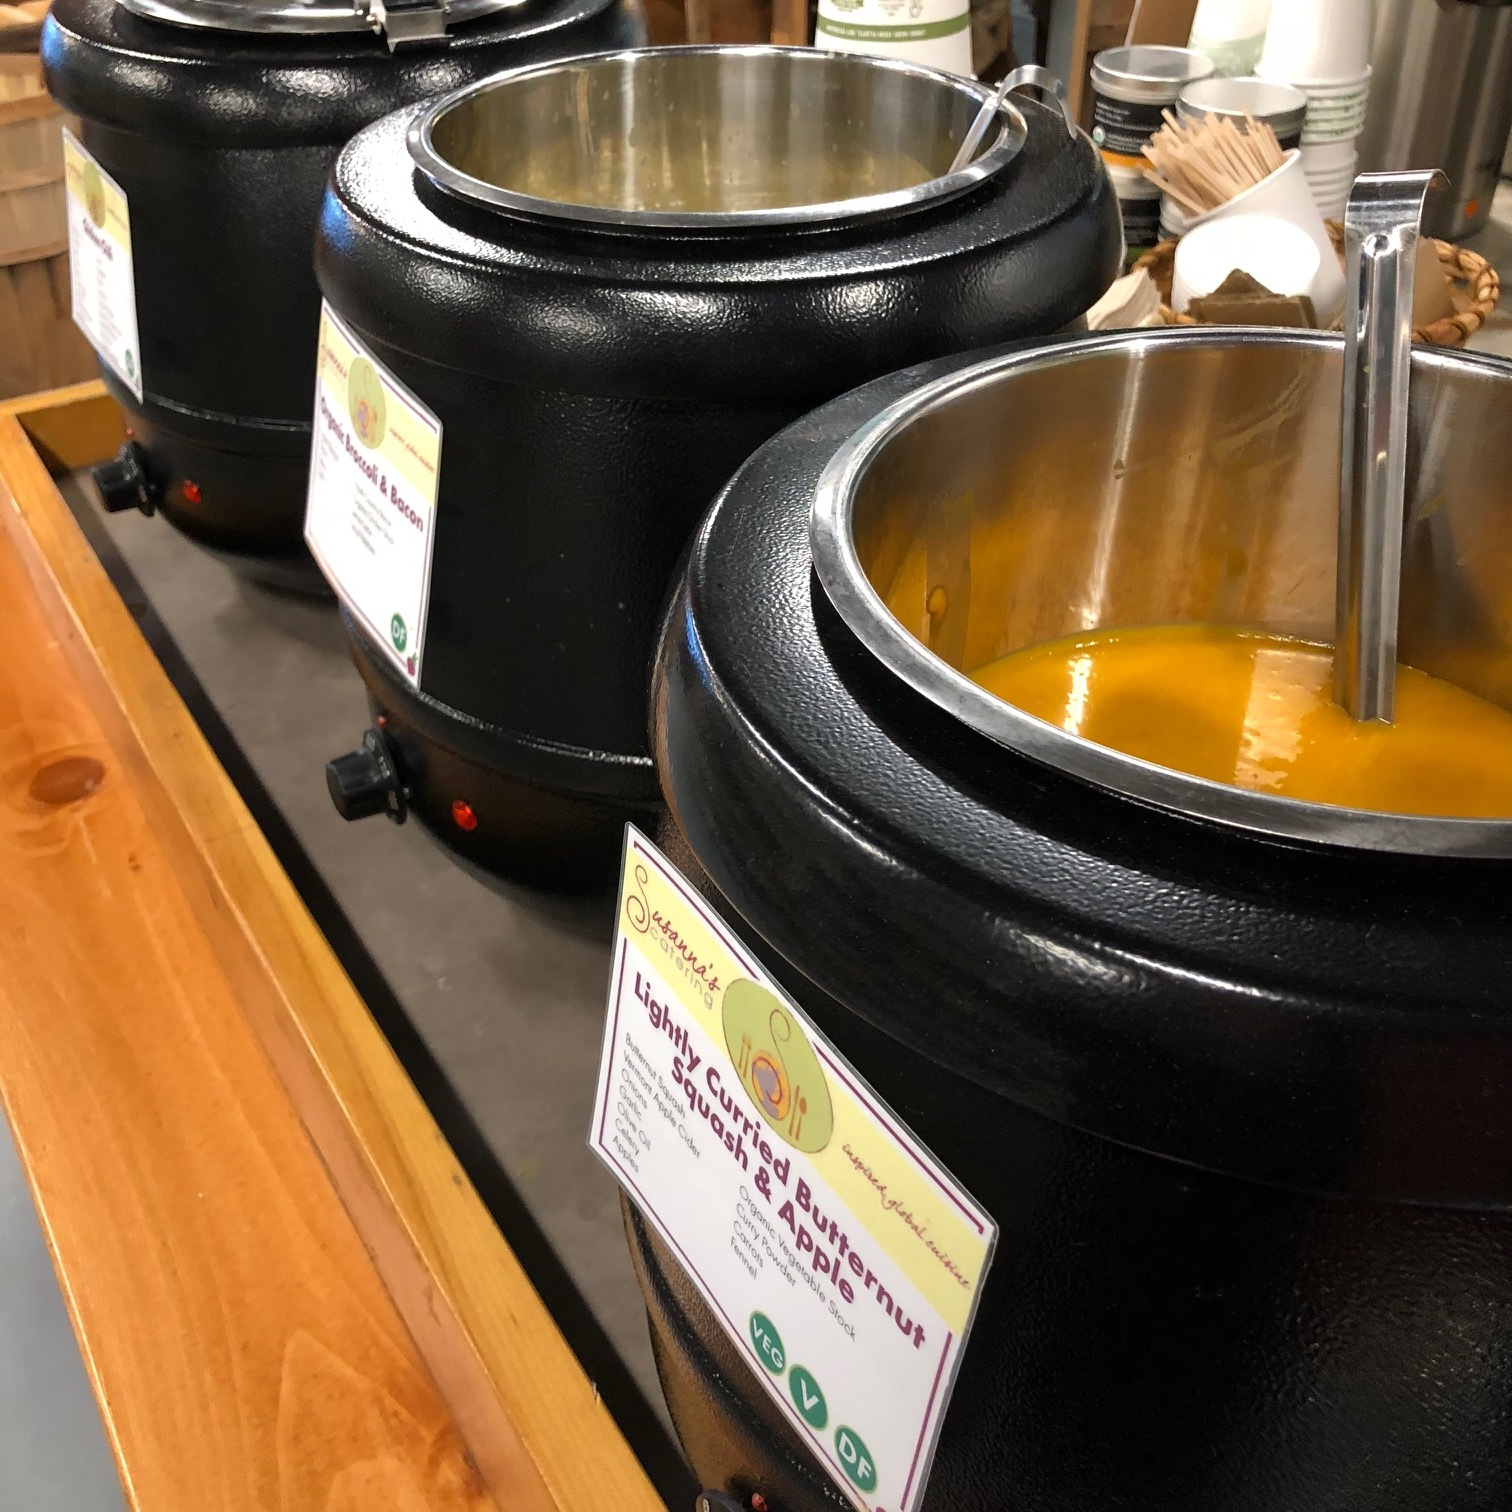 MoCo Cafe - Fresh soups are made daily in the Cafe at MoCo(vegan/vegetarian, hearty) Call to find out what we have (802)888-2255Fresh brewed local coffee is available anytime, and we have fresh-baked breads and other baked goods delivered daily to enjoy on-the-spot or to take home for your family.